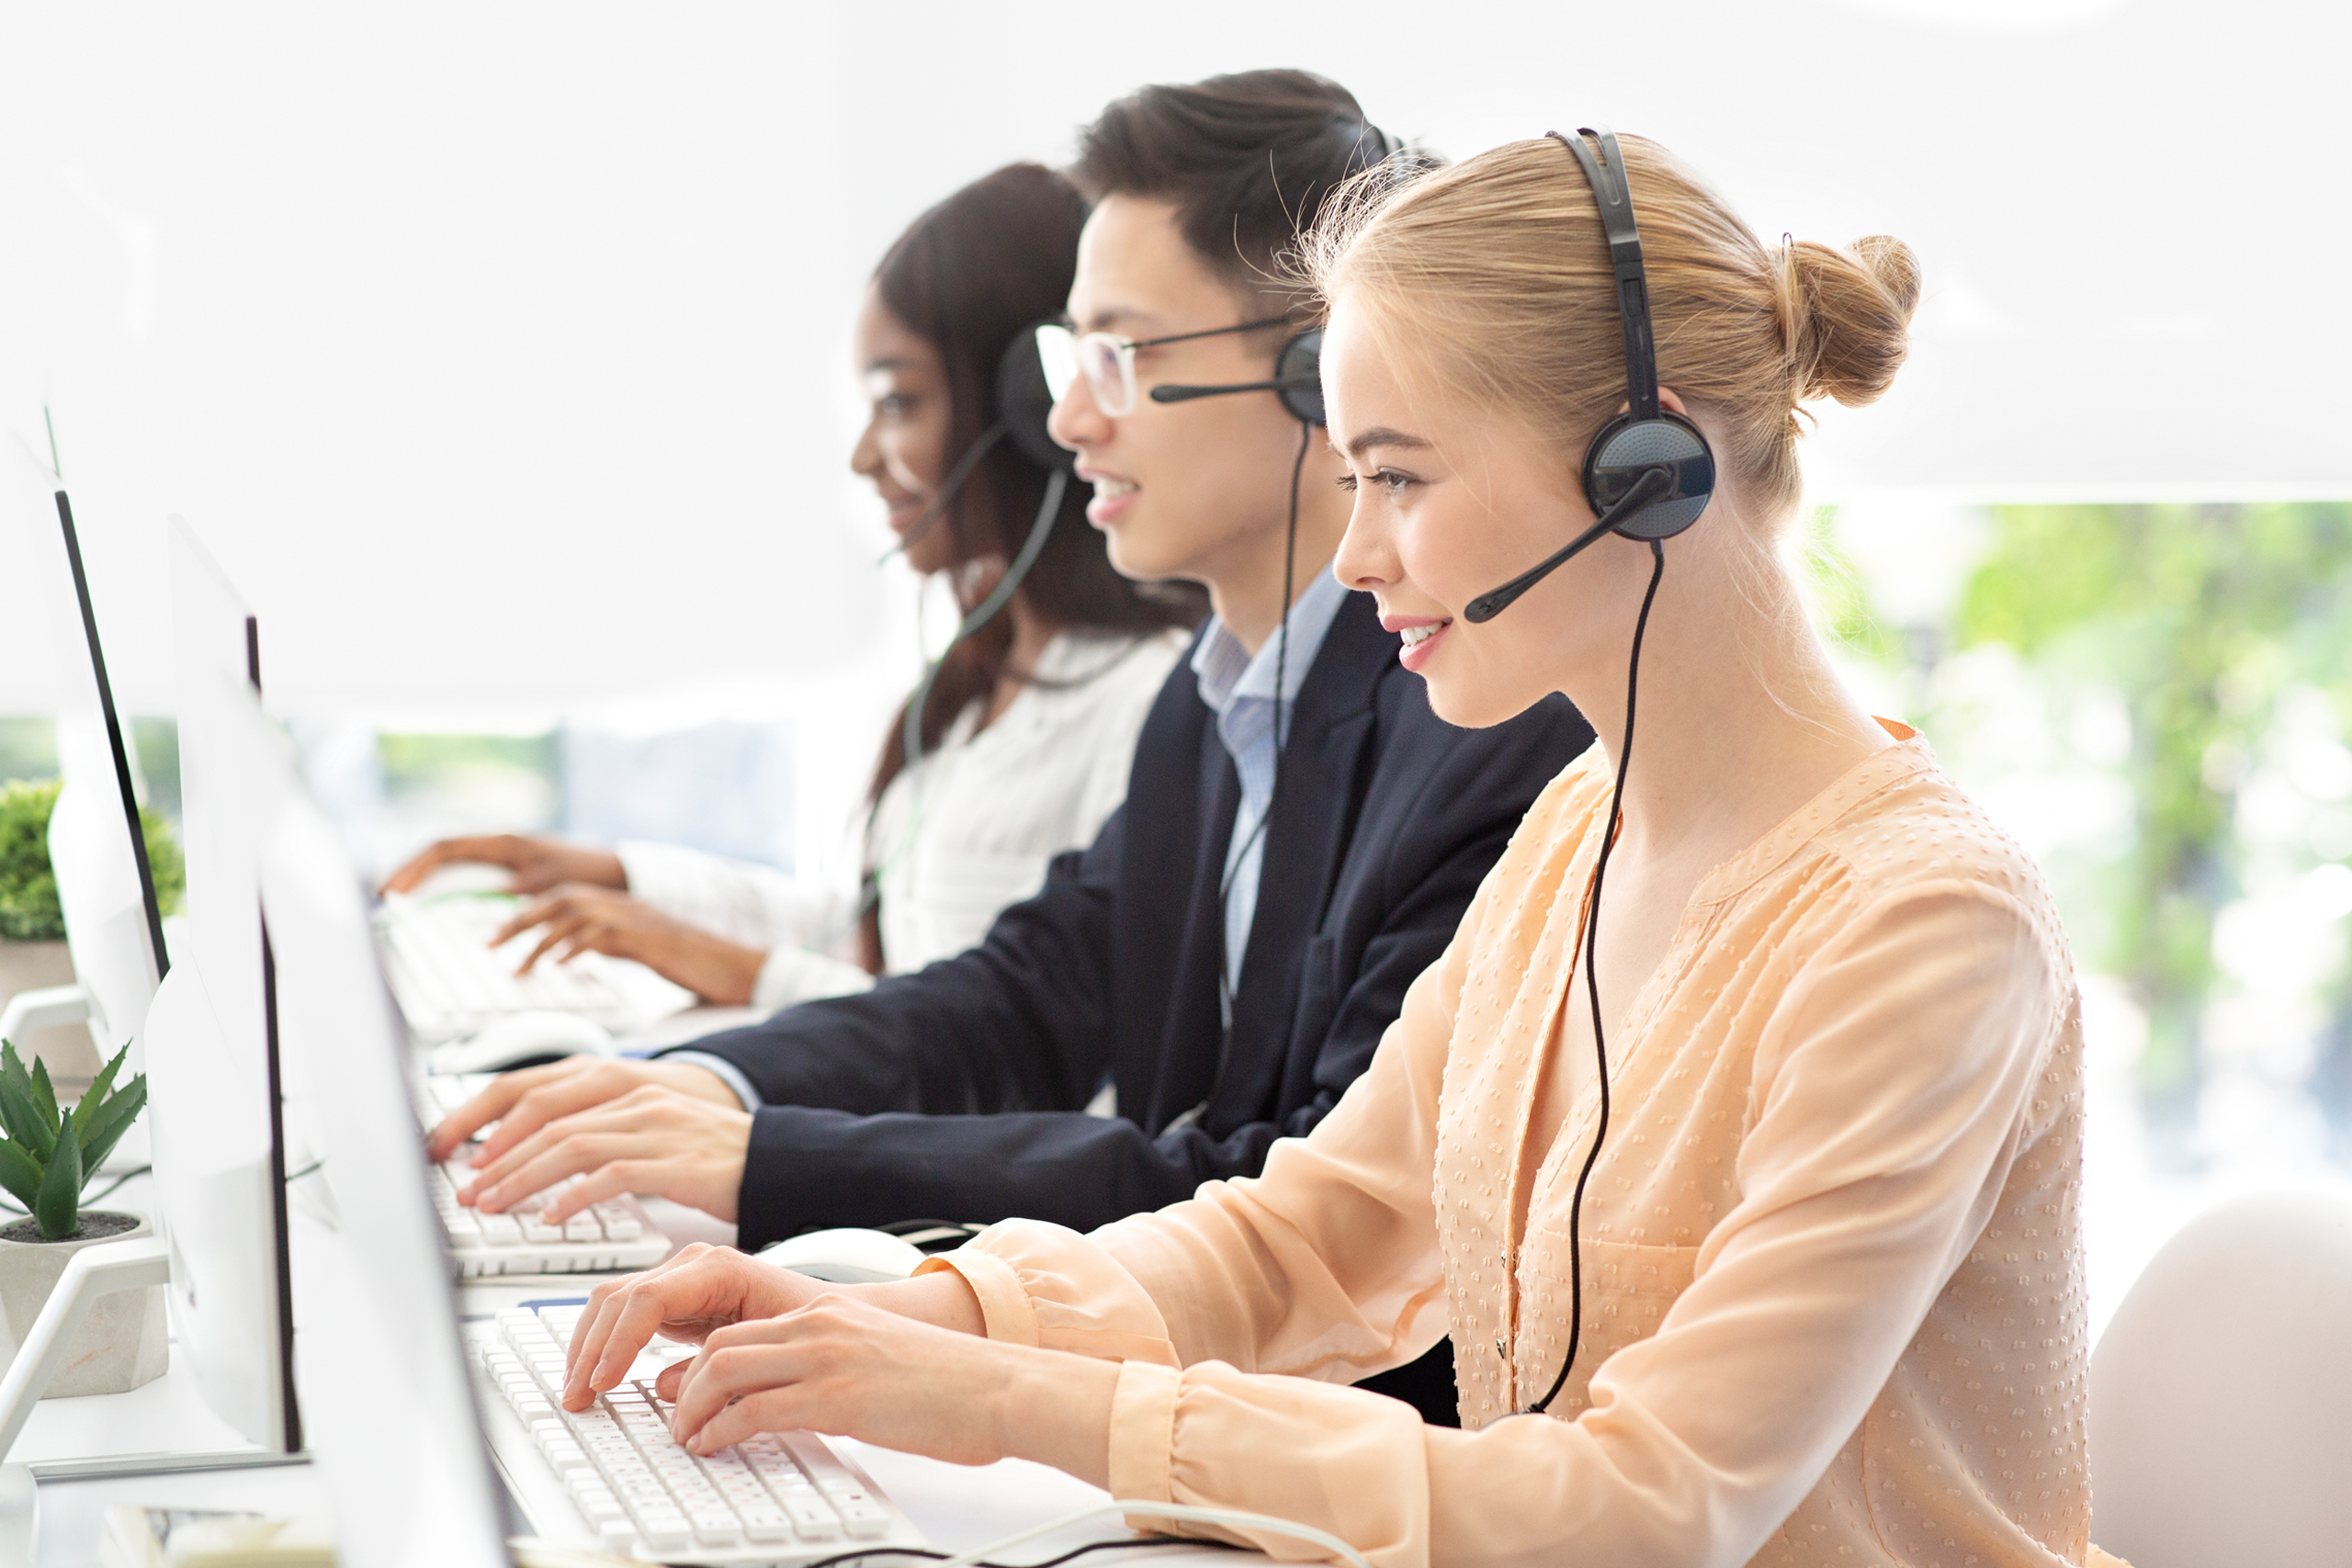 Perth Corporate IT Services   by Computing Australia   Perth Medical IT Services   by Computing Australia   Mining & Exploration IT Services   Computing Australia